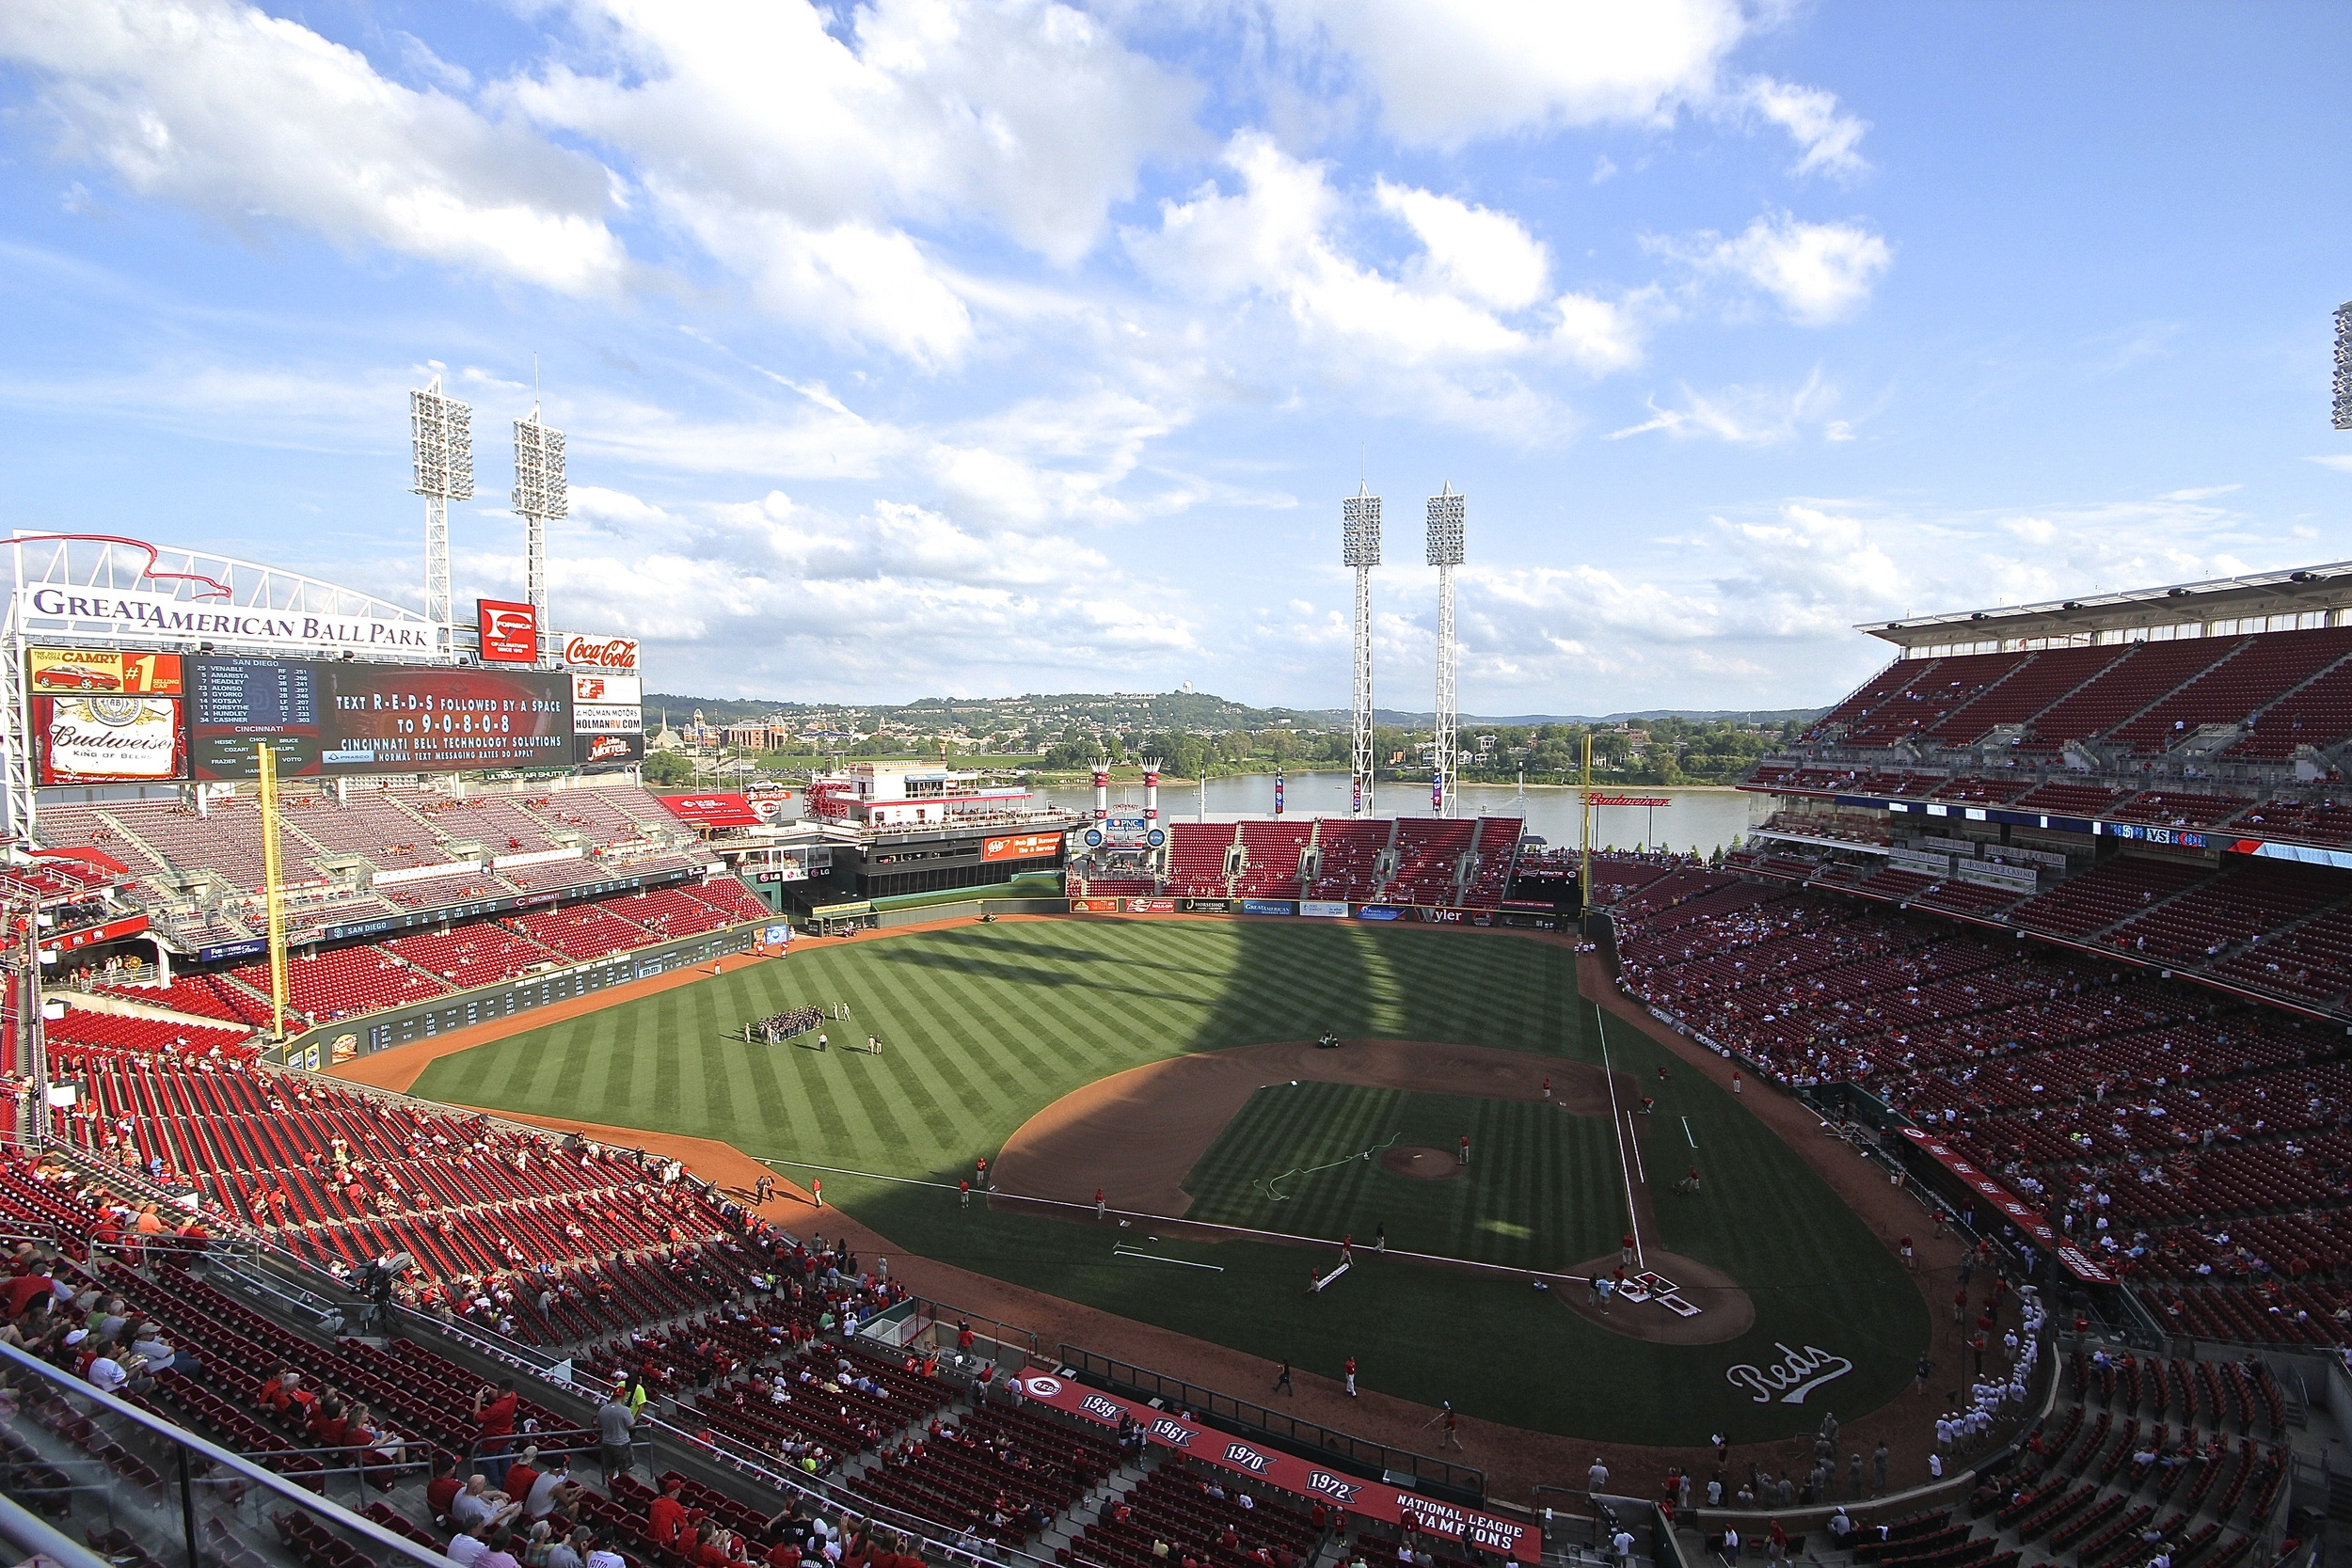 Great American Ballpark in the shadows